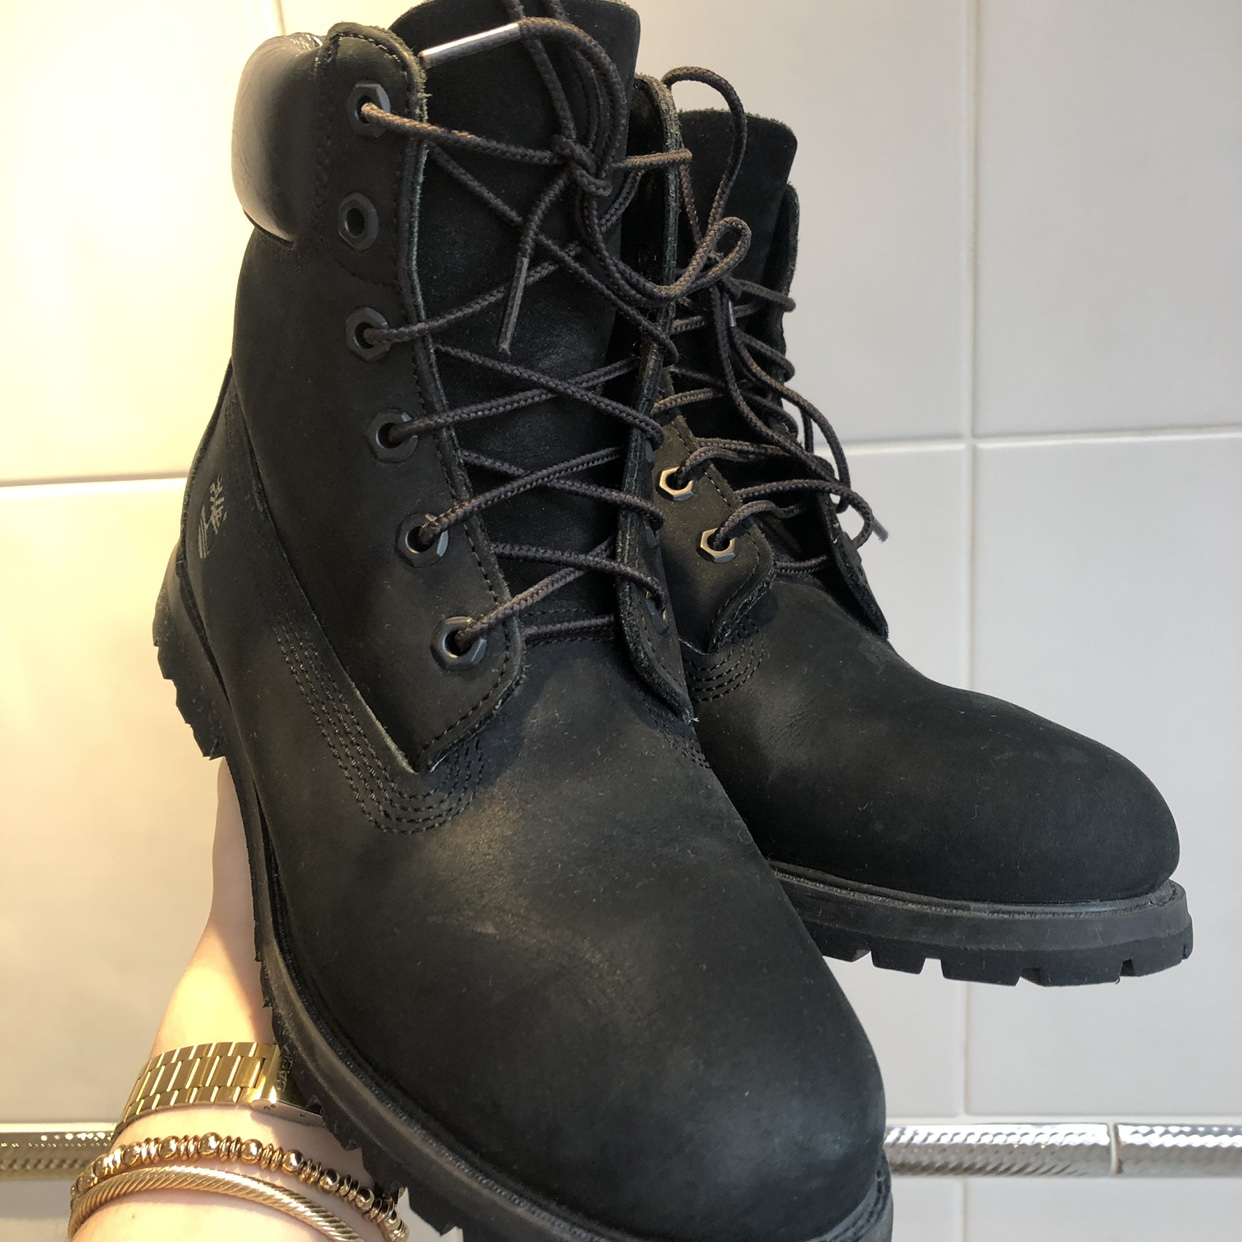 Triple black timberland boots Uk 8 worn once In Depop